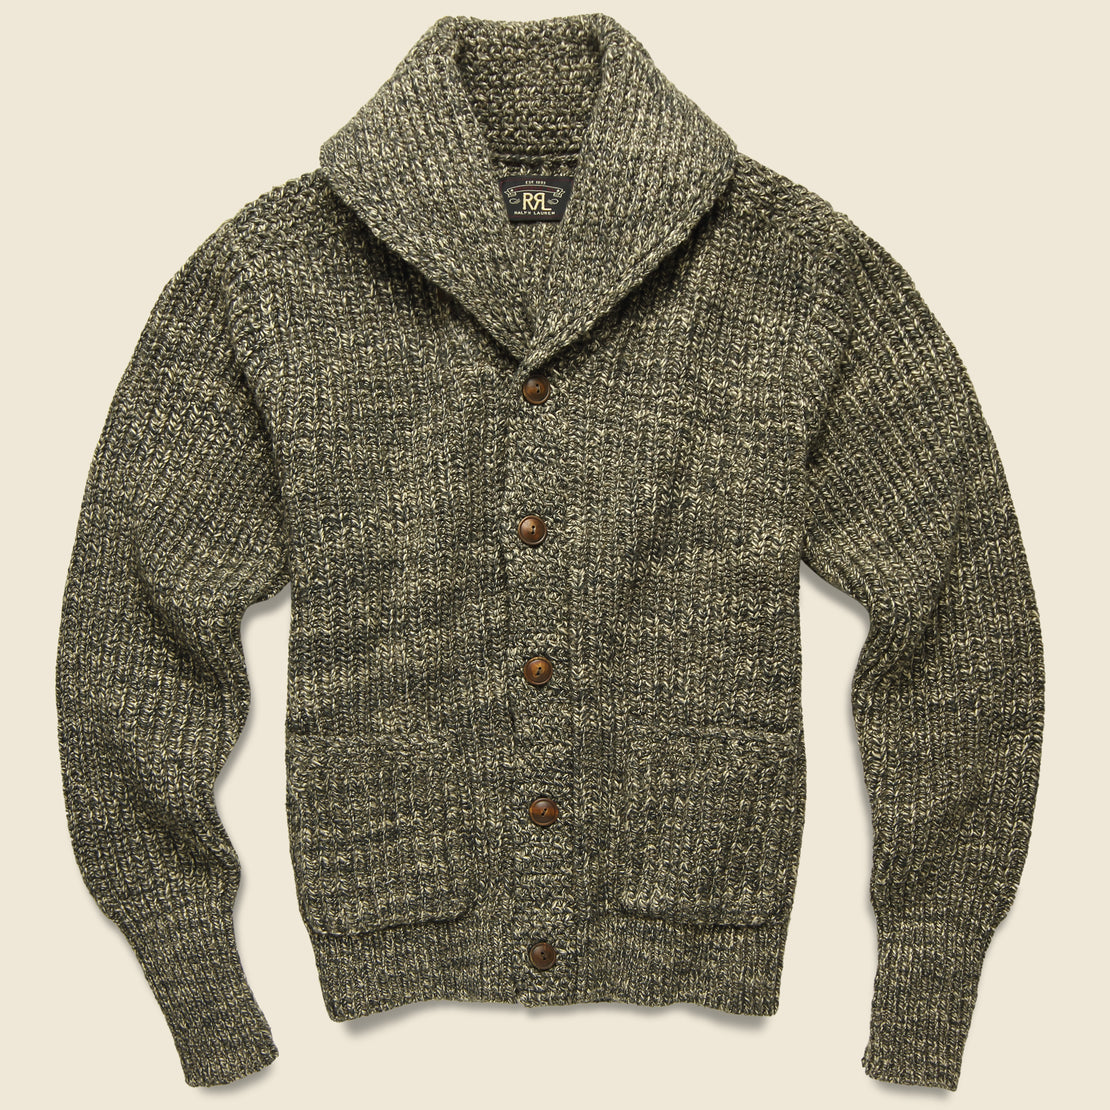 RRL Shawl Collar Cardigan - Olive/Tan